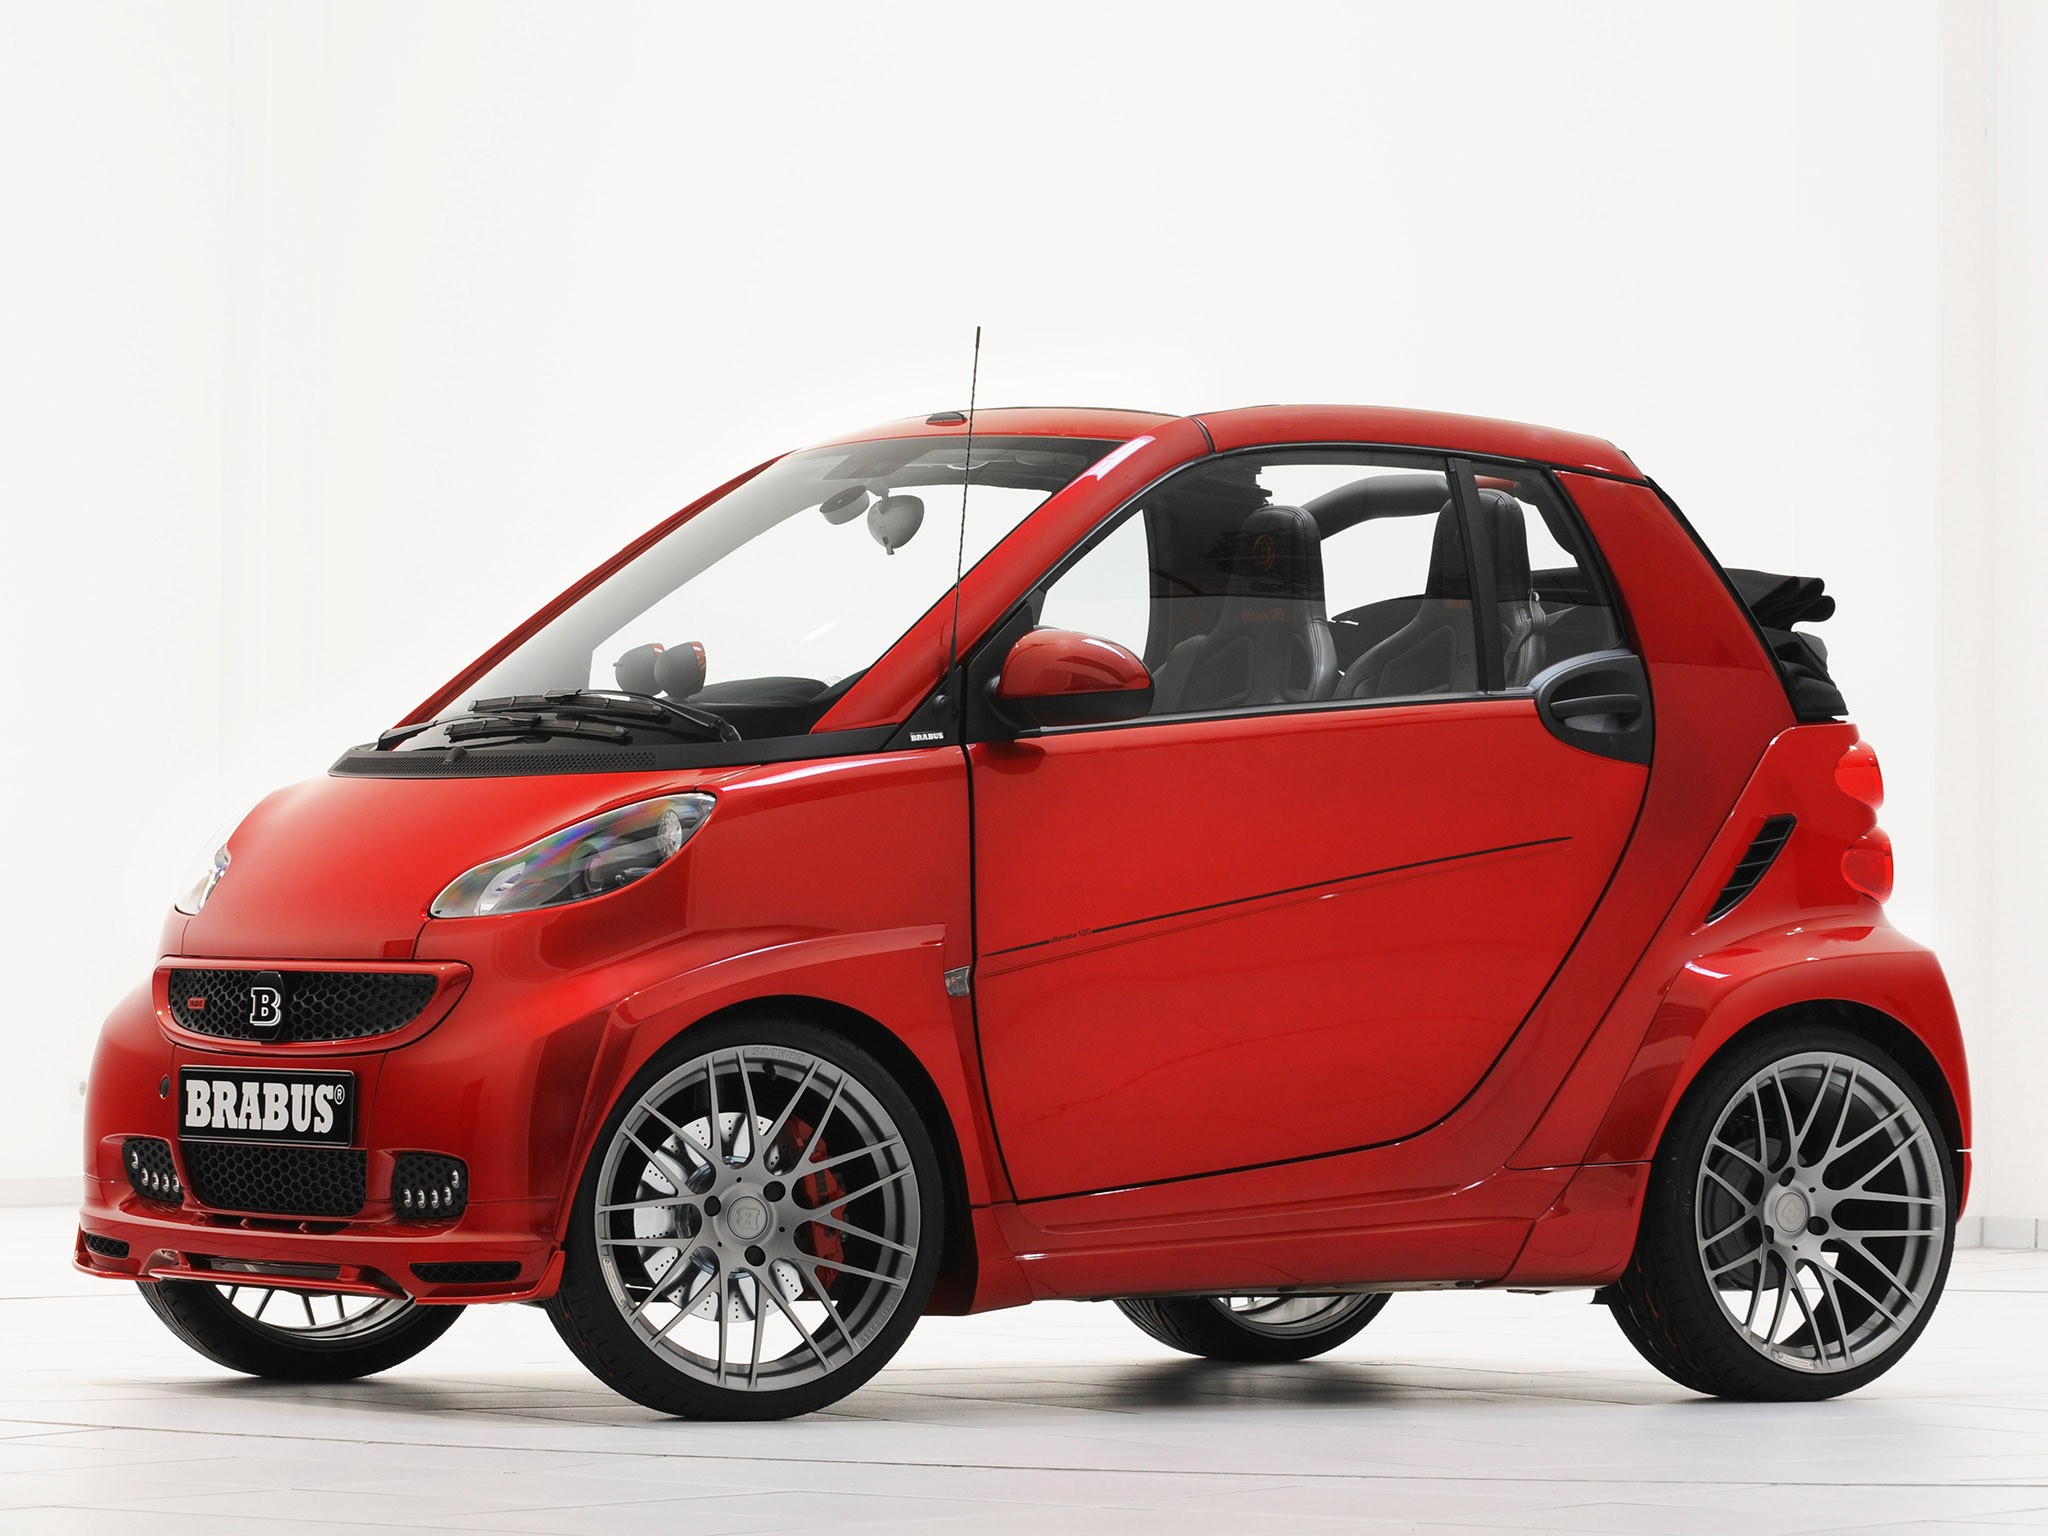 2012 Brabus Smart Fortwo Ultimate 120